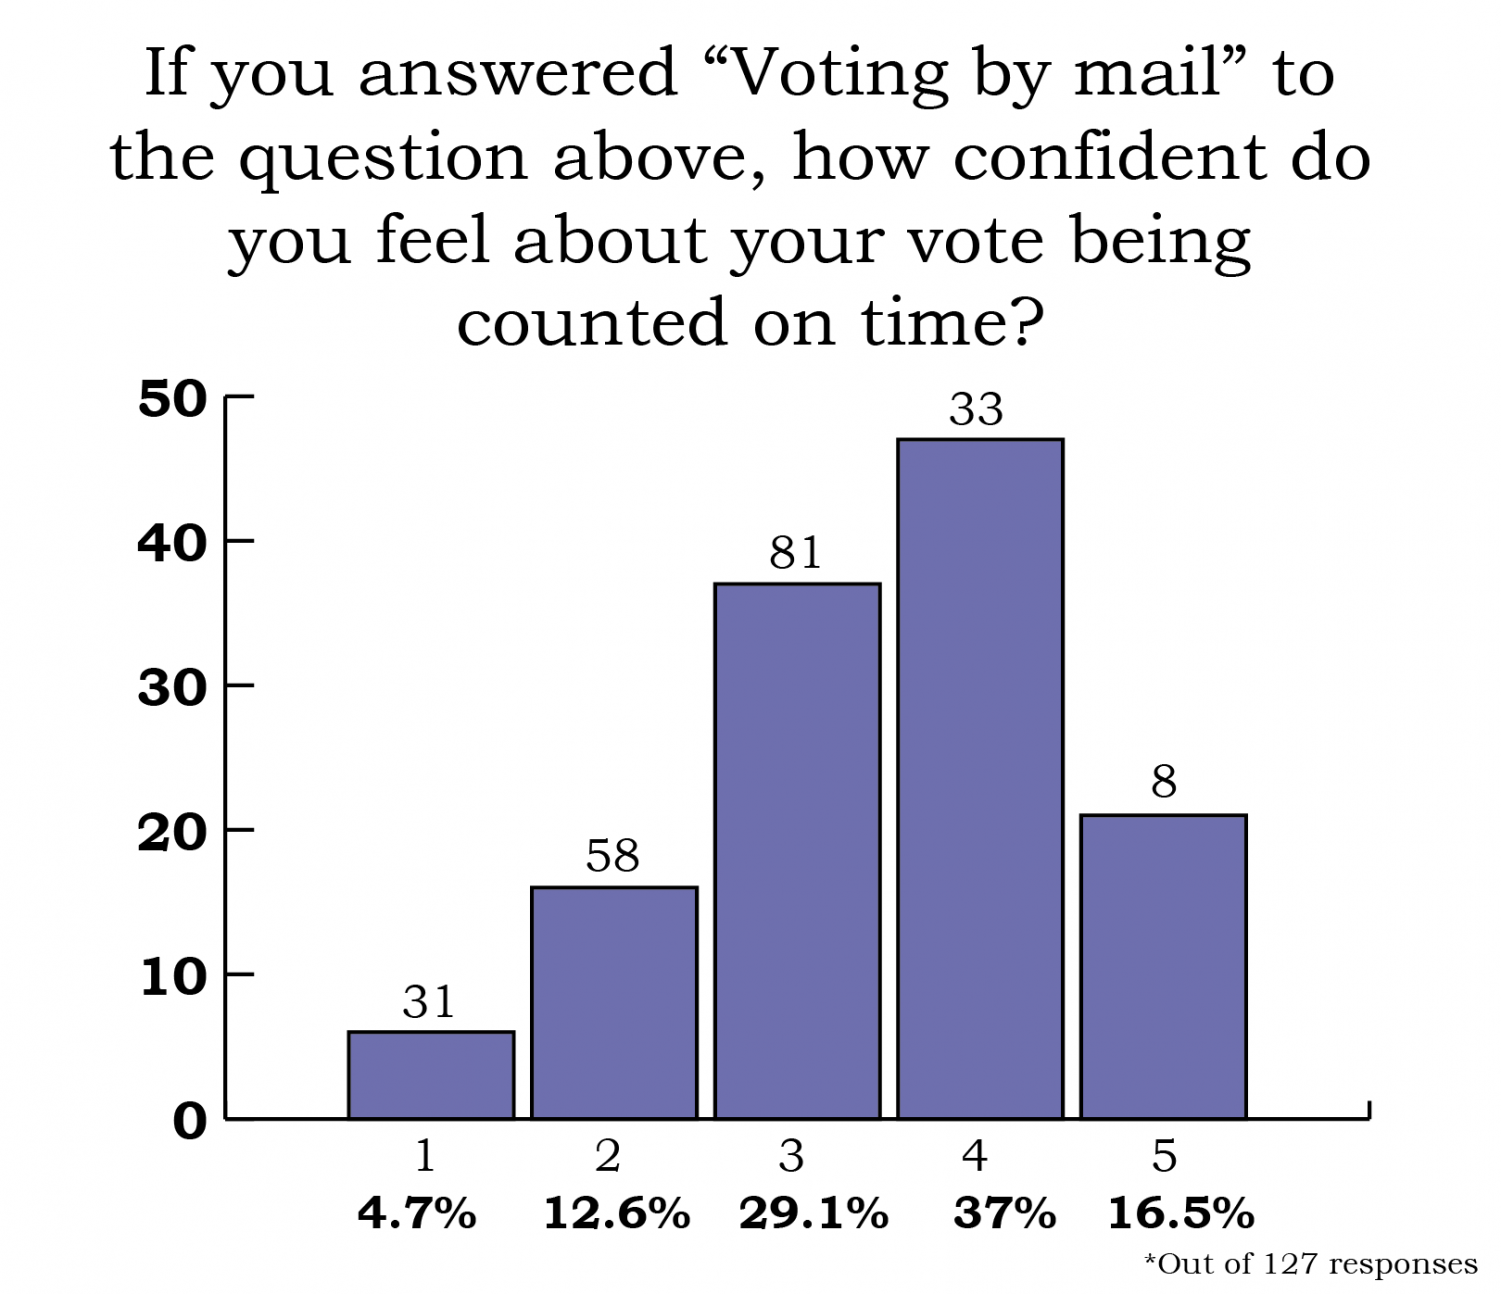 survey results in a bar chart showing most people giving a confidence score of 4 out or 5 for their vote by mail being received on time